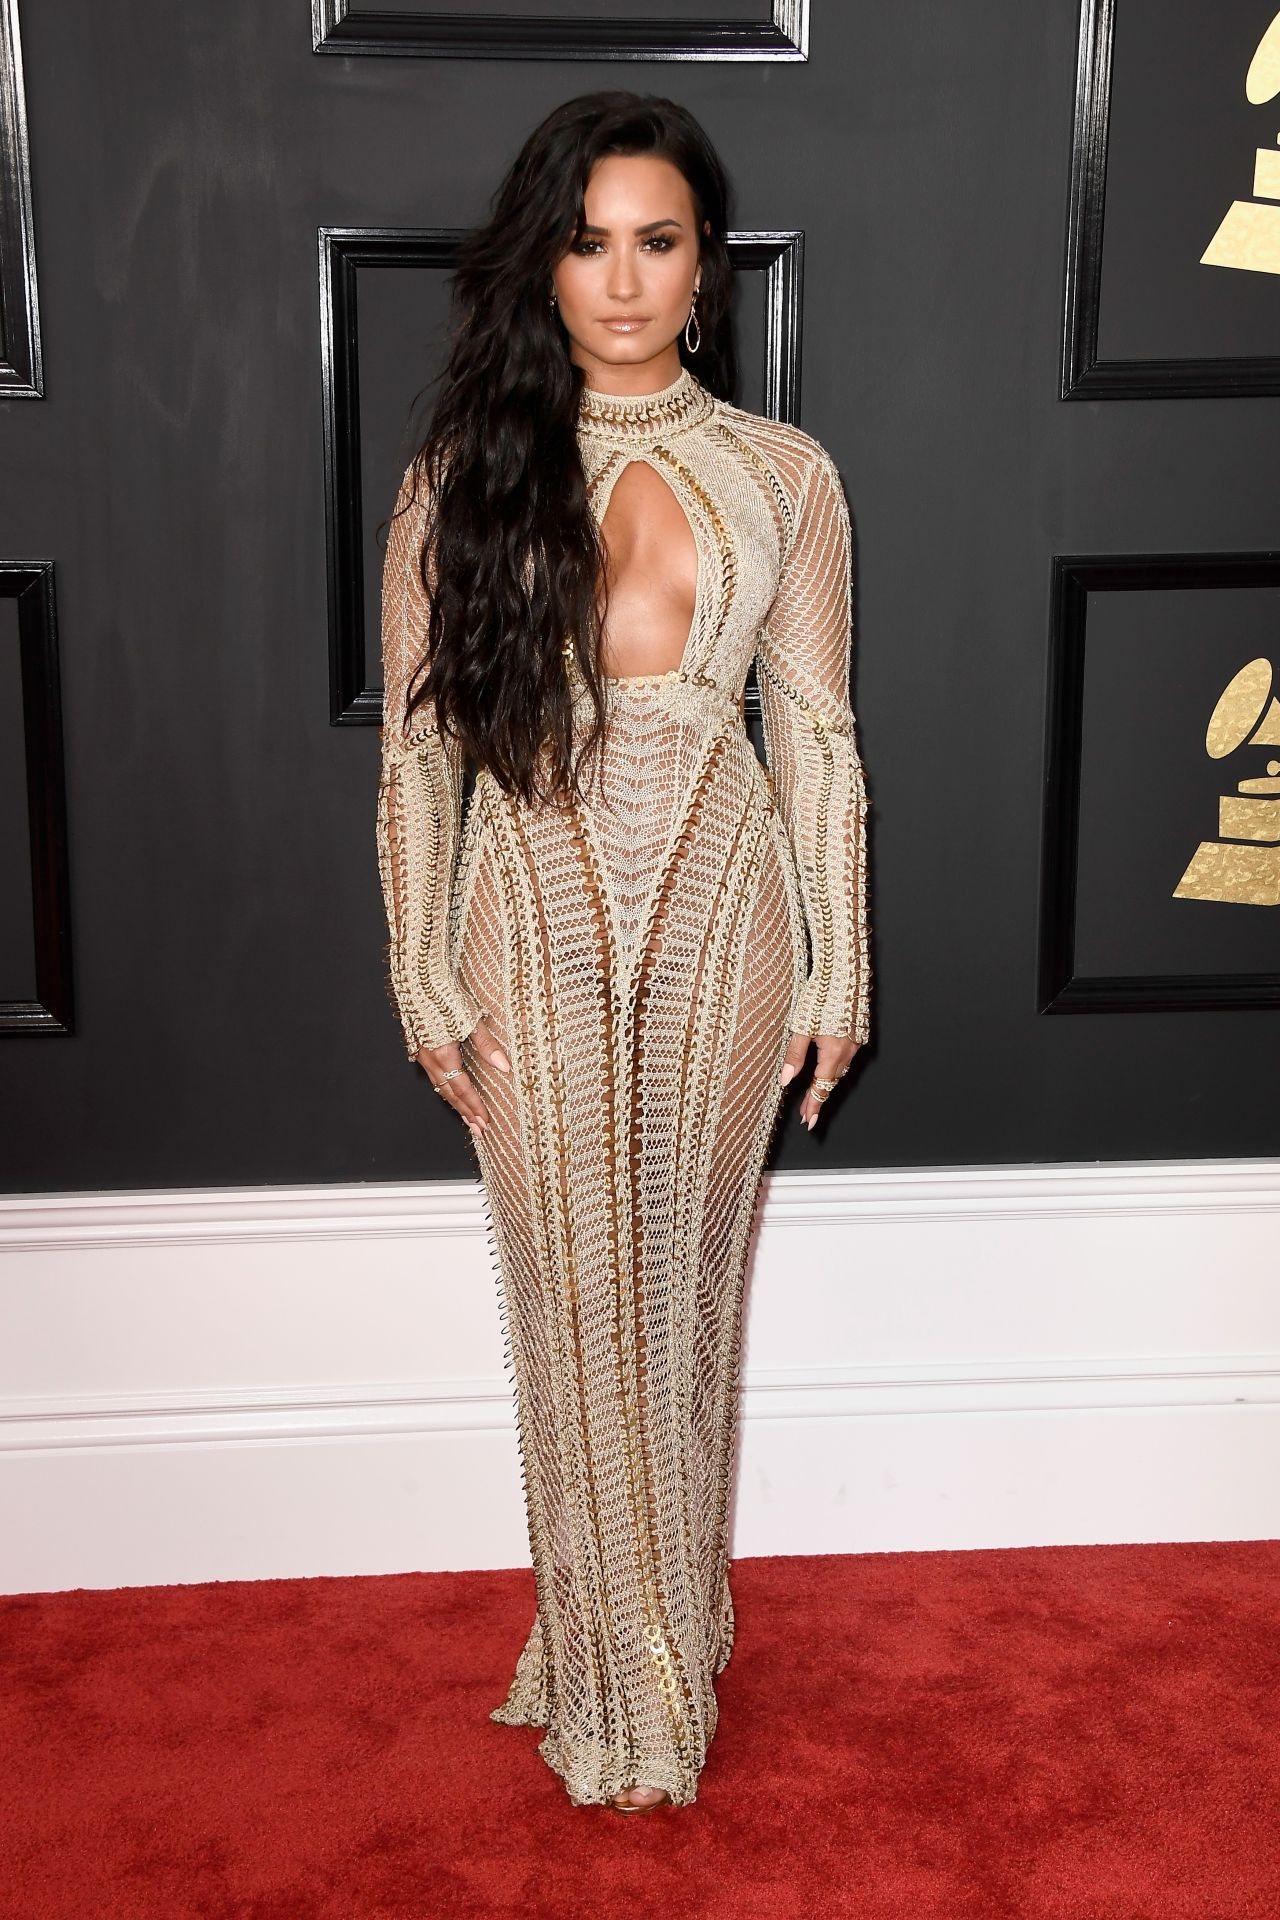 GRAMMY Awards 2017 Red Carpet: Stars, Style, And More